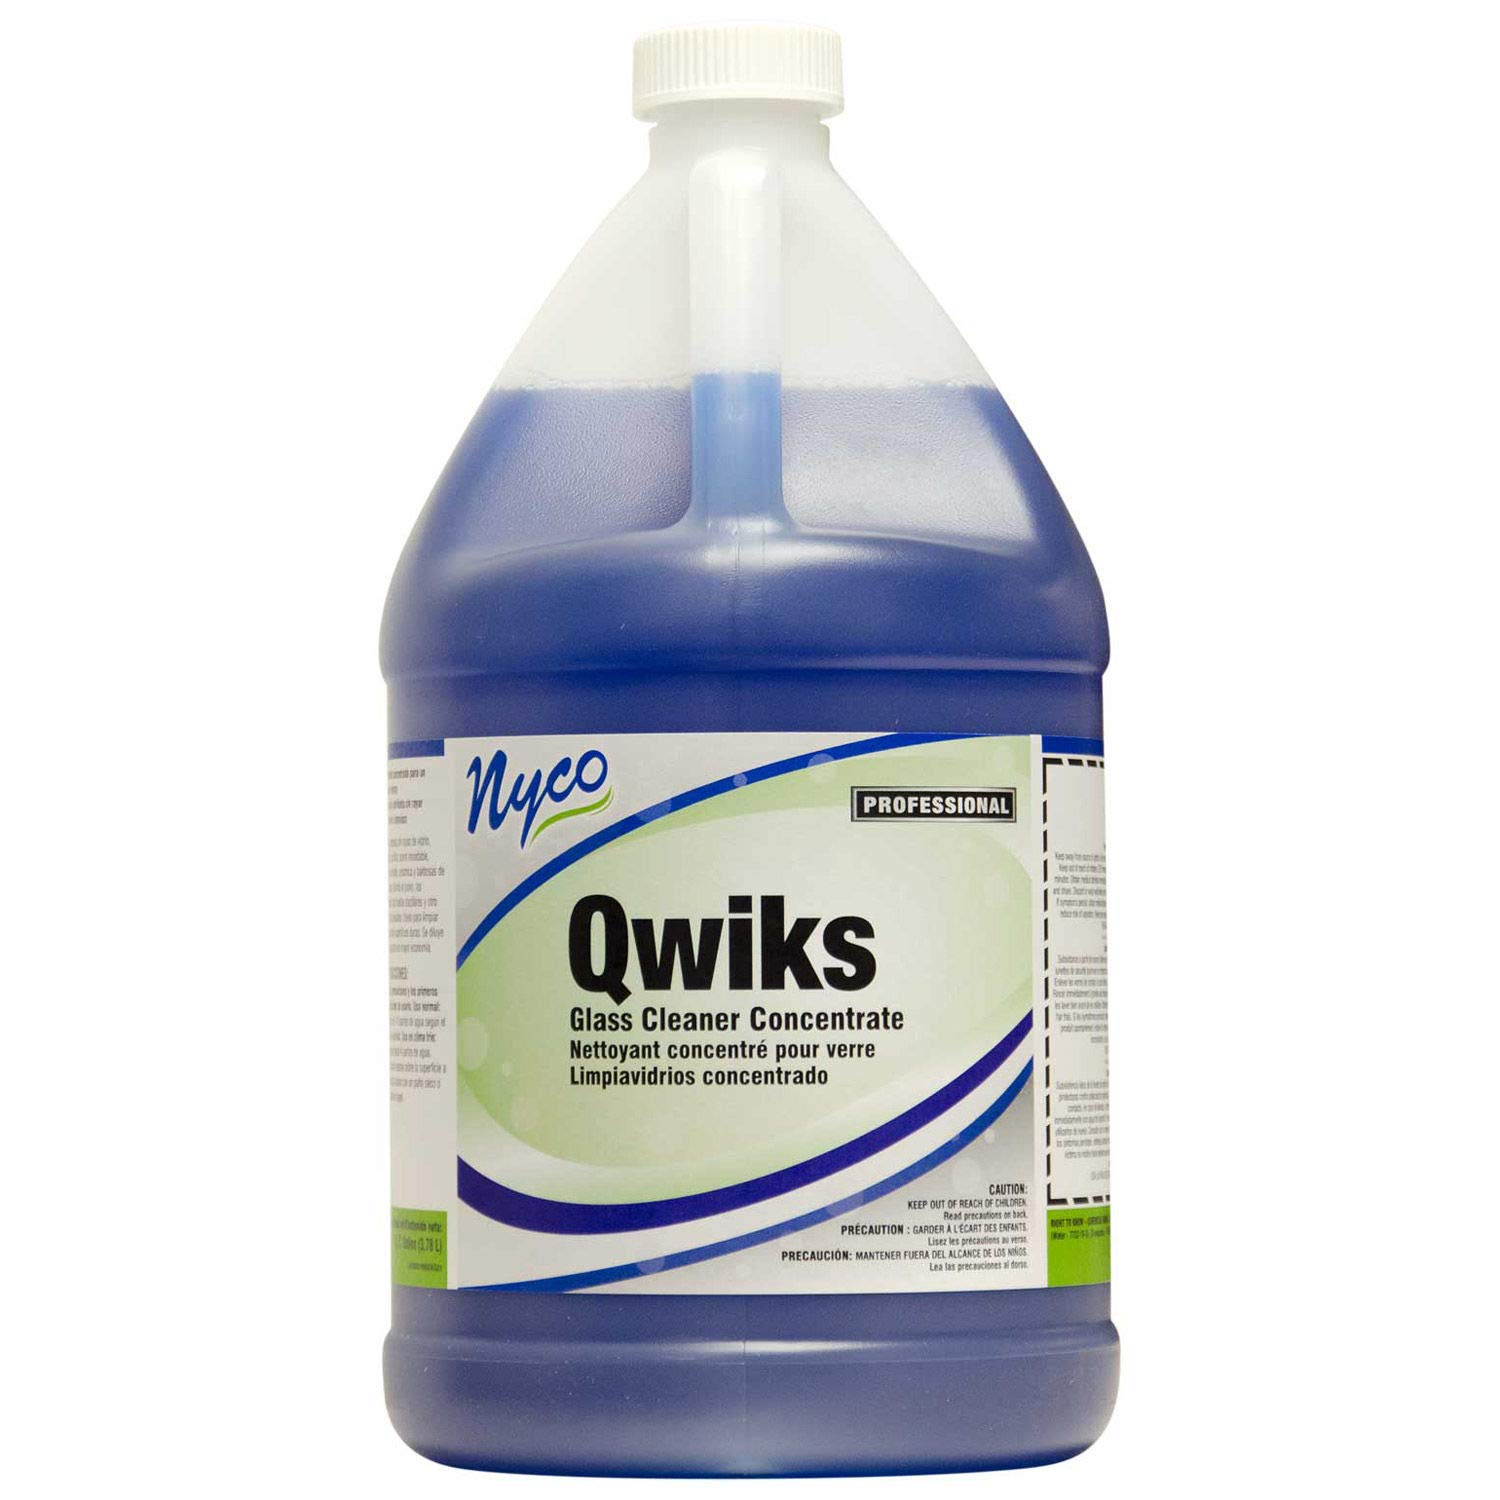 Nyco Products NL900-G4 Qwiks Concentrated Glass Cleaner Concentrate, 1-Gallon Bottle (Case of 4)